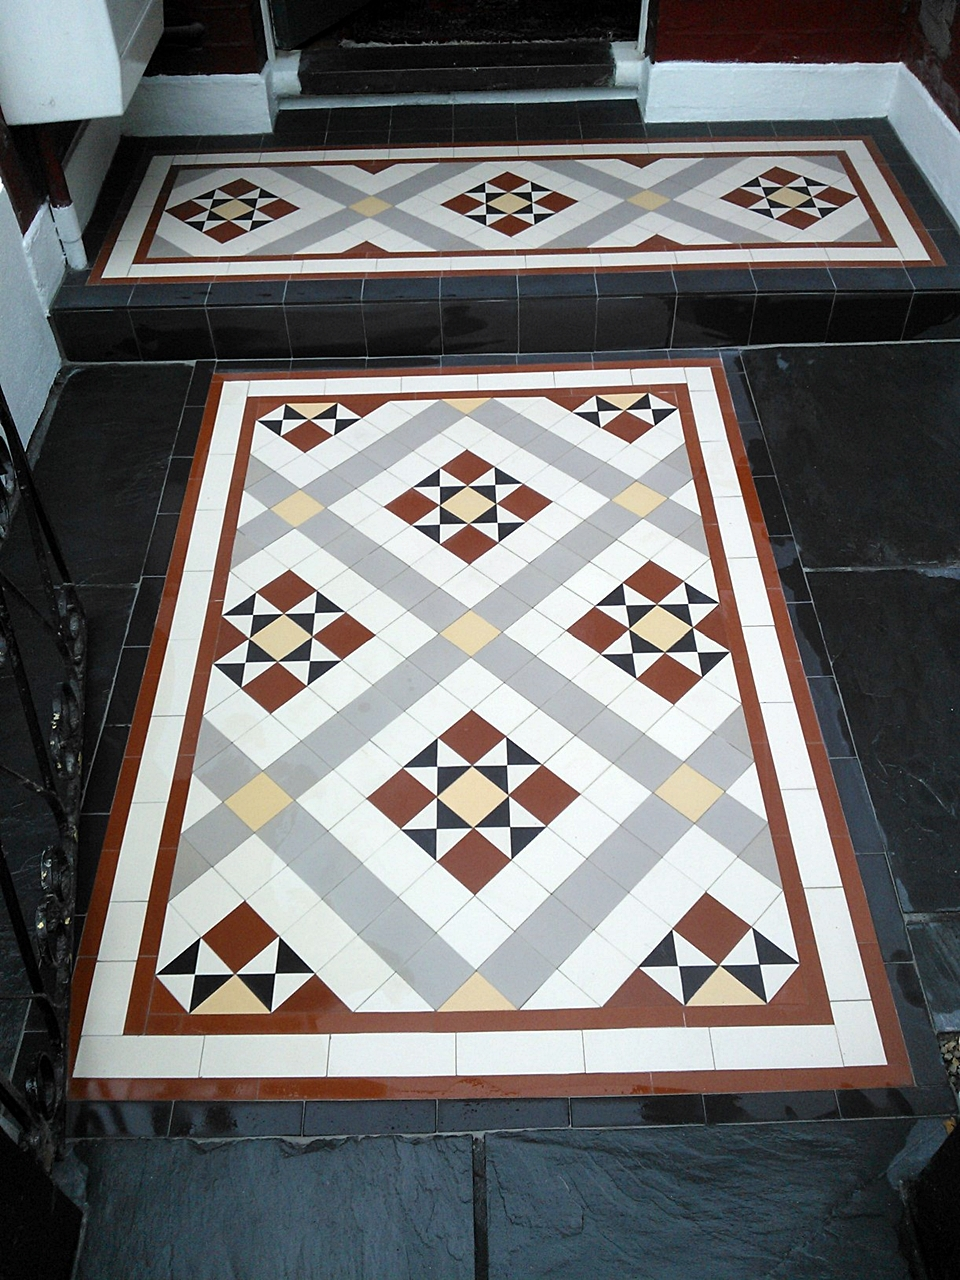 willesden victorian mosaic tile path installation london (4)